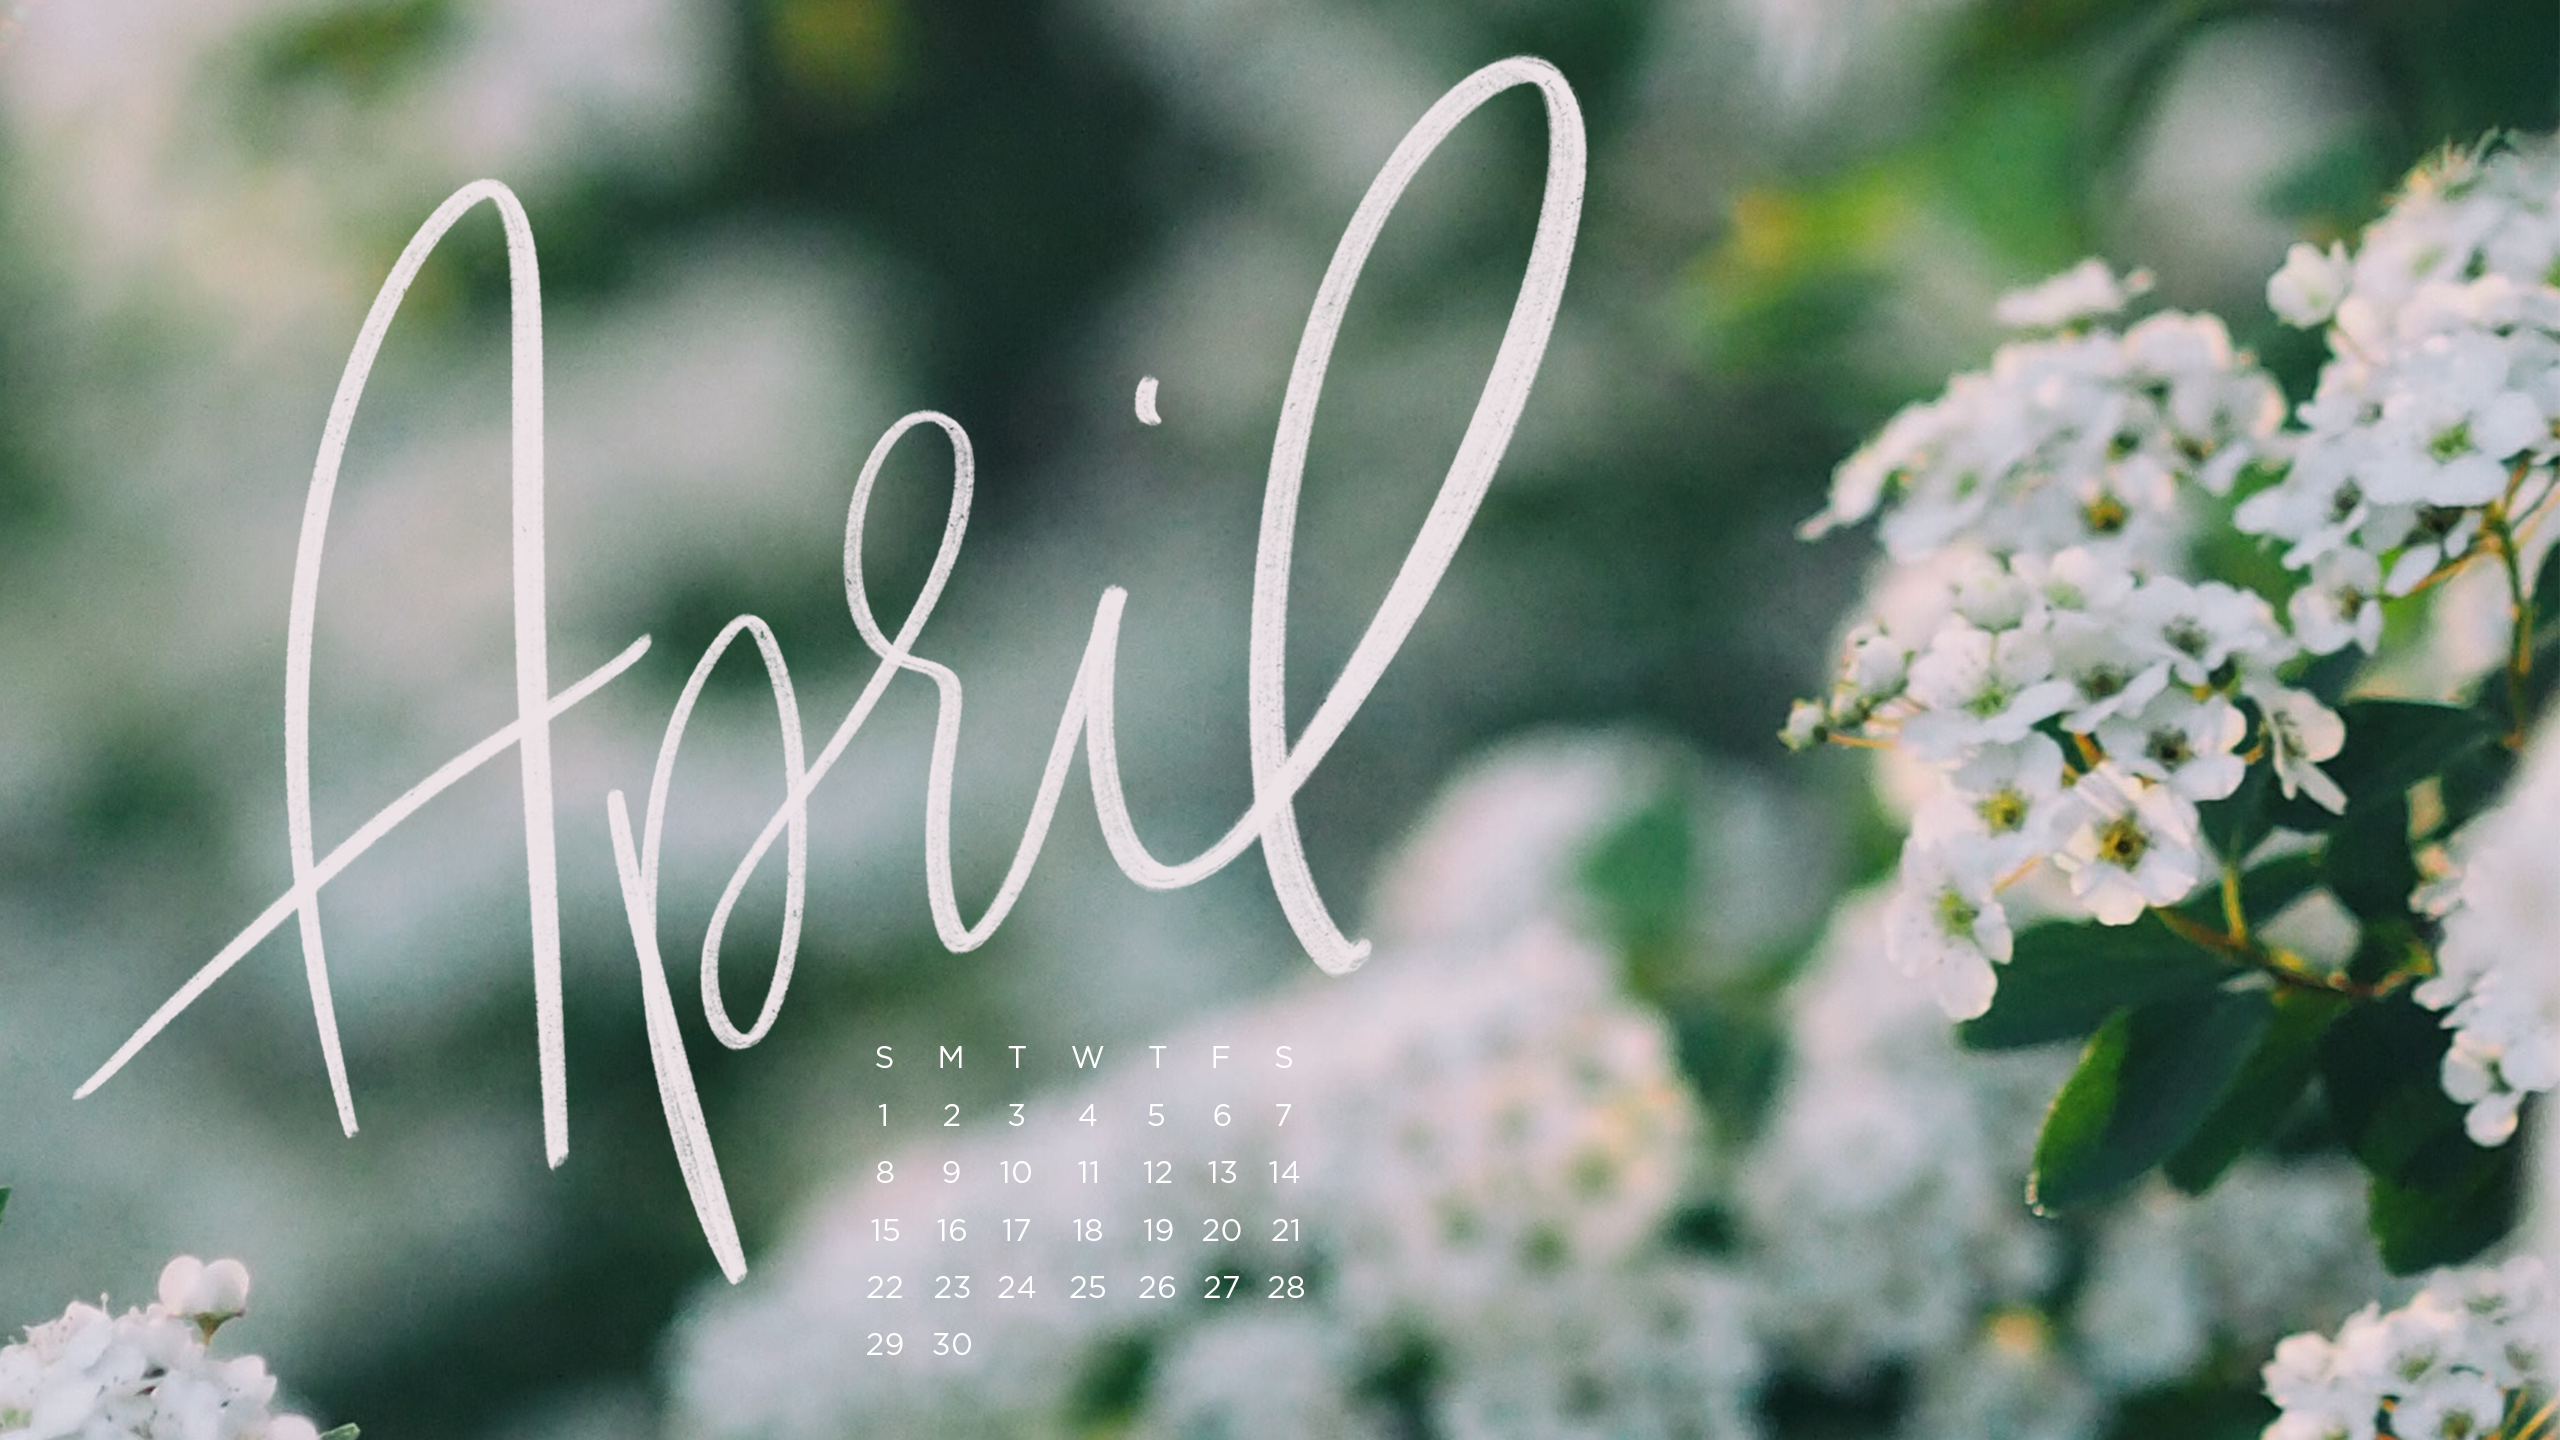 Free Downloadable Tech Backgrounds For April The Everygirl